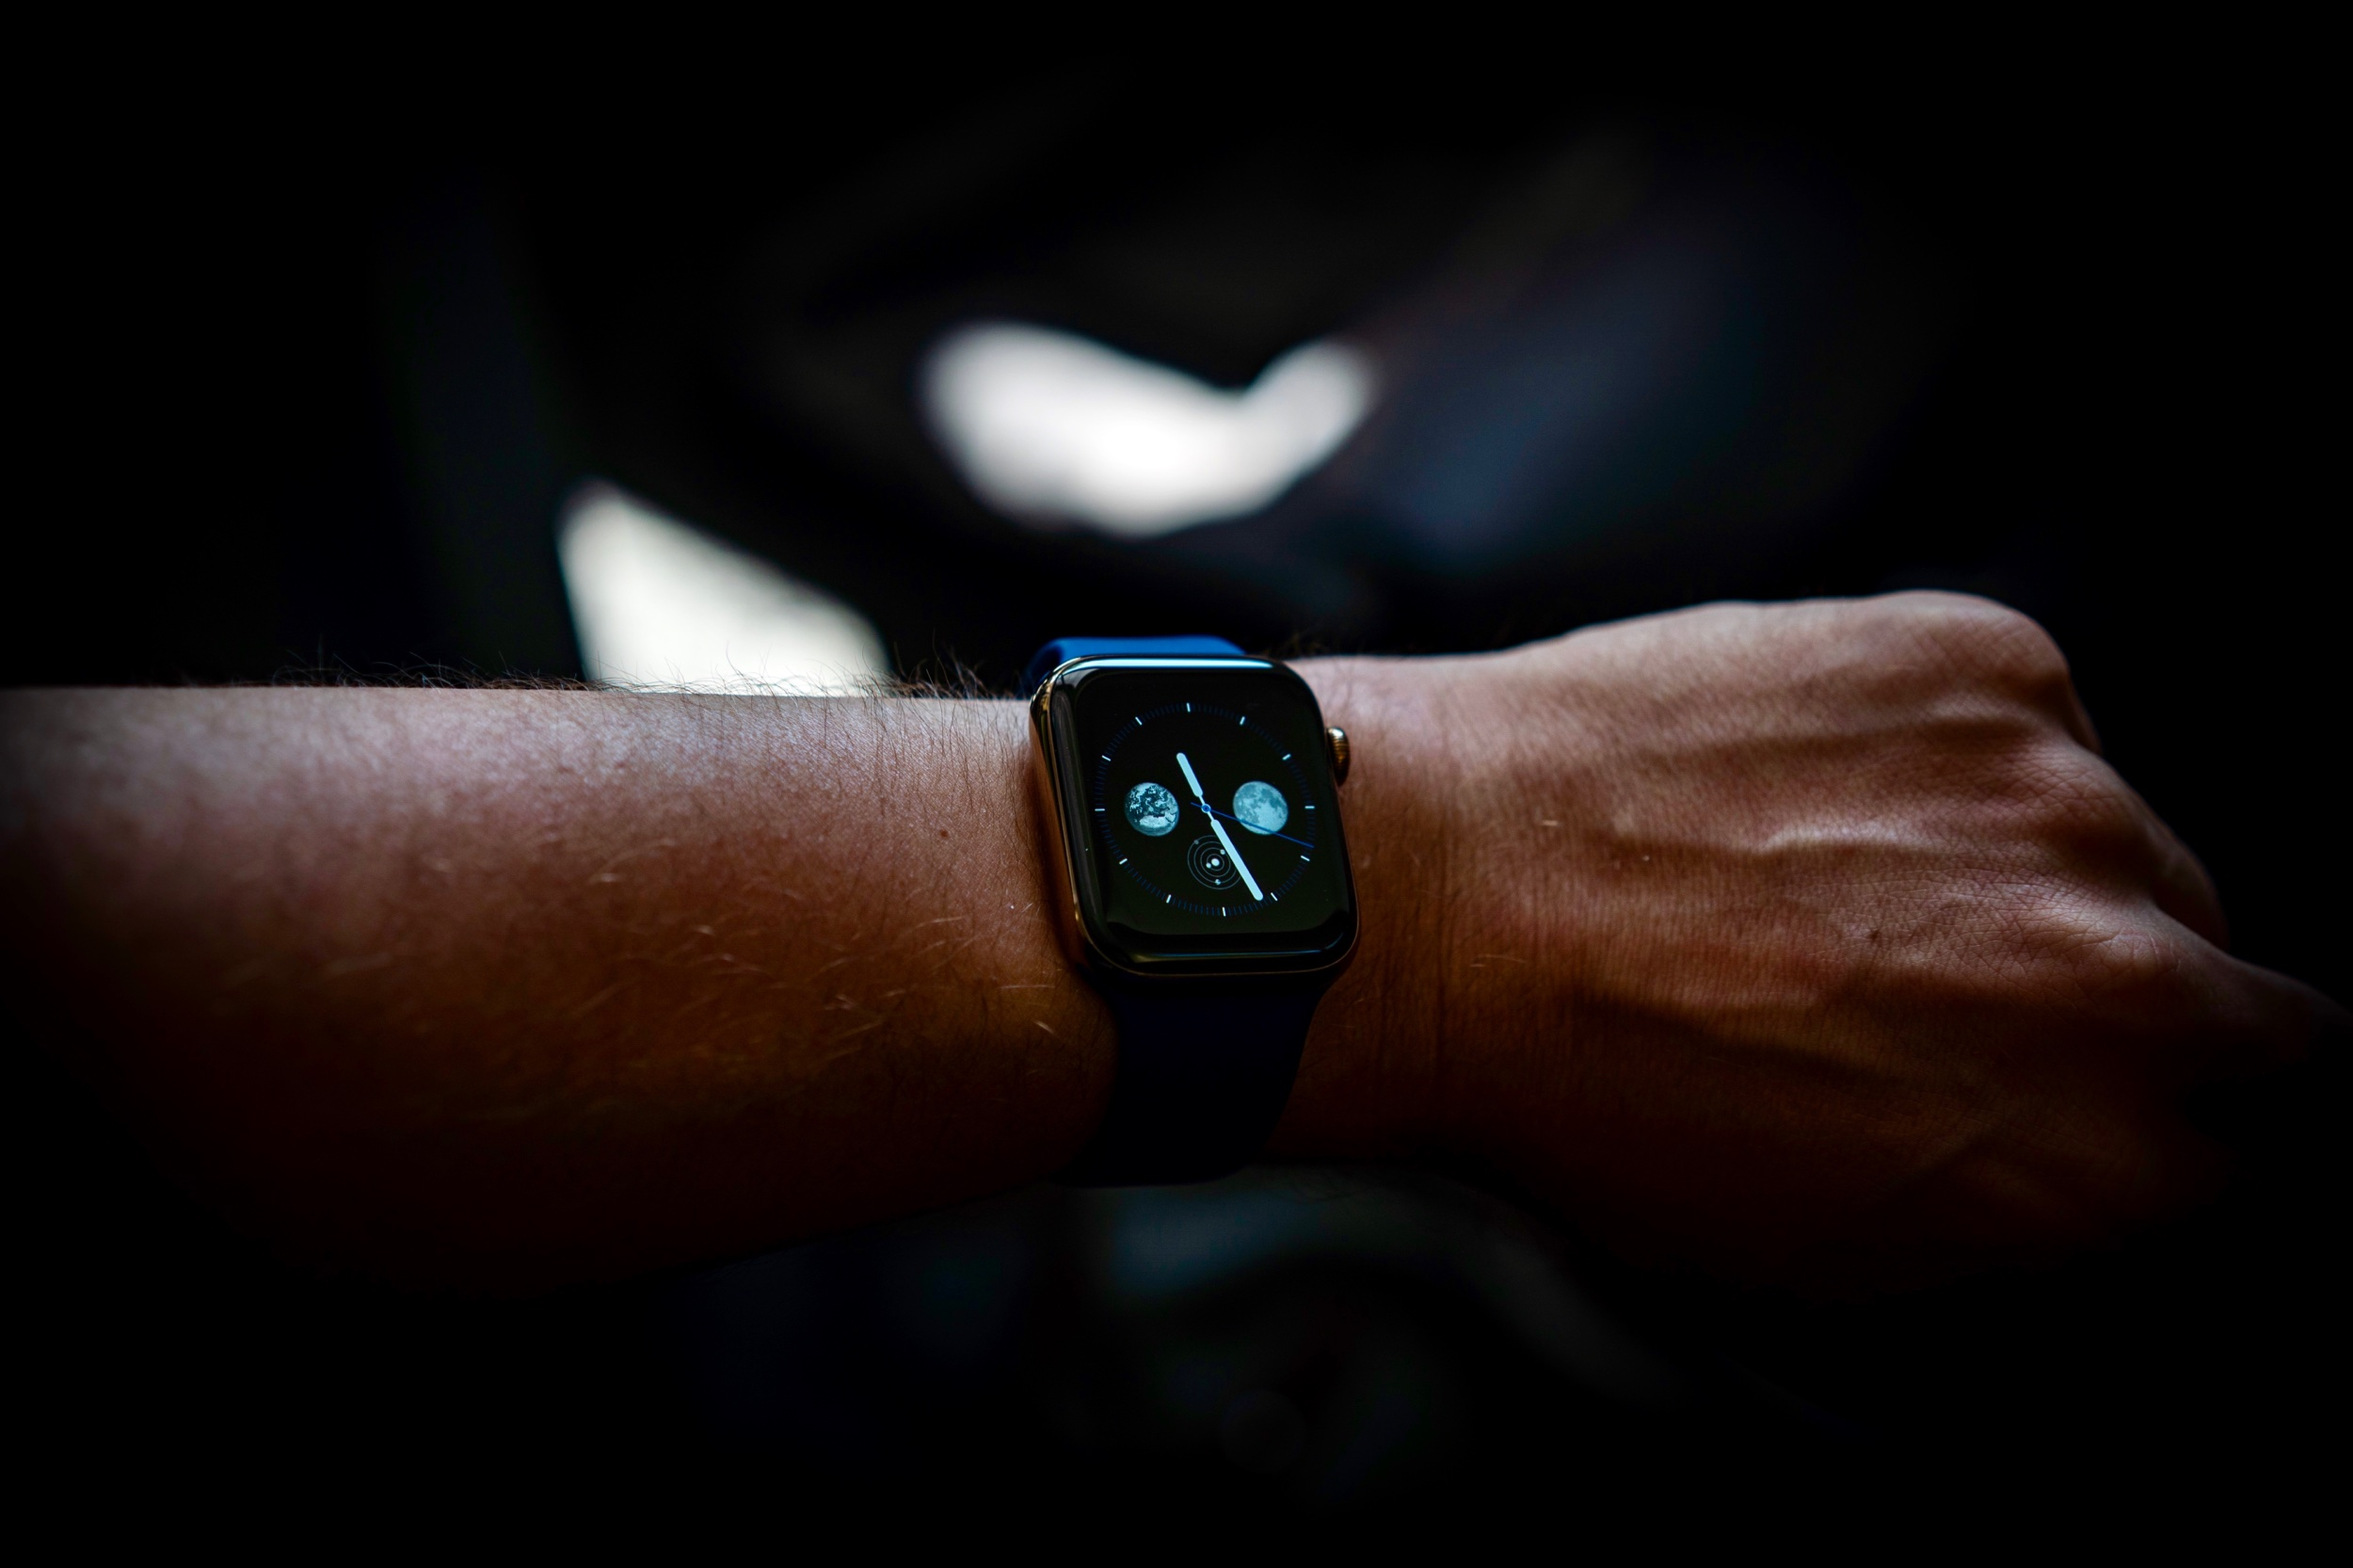 Apple-Watch-Planetary-Watch-Face-Delftblue